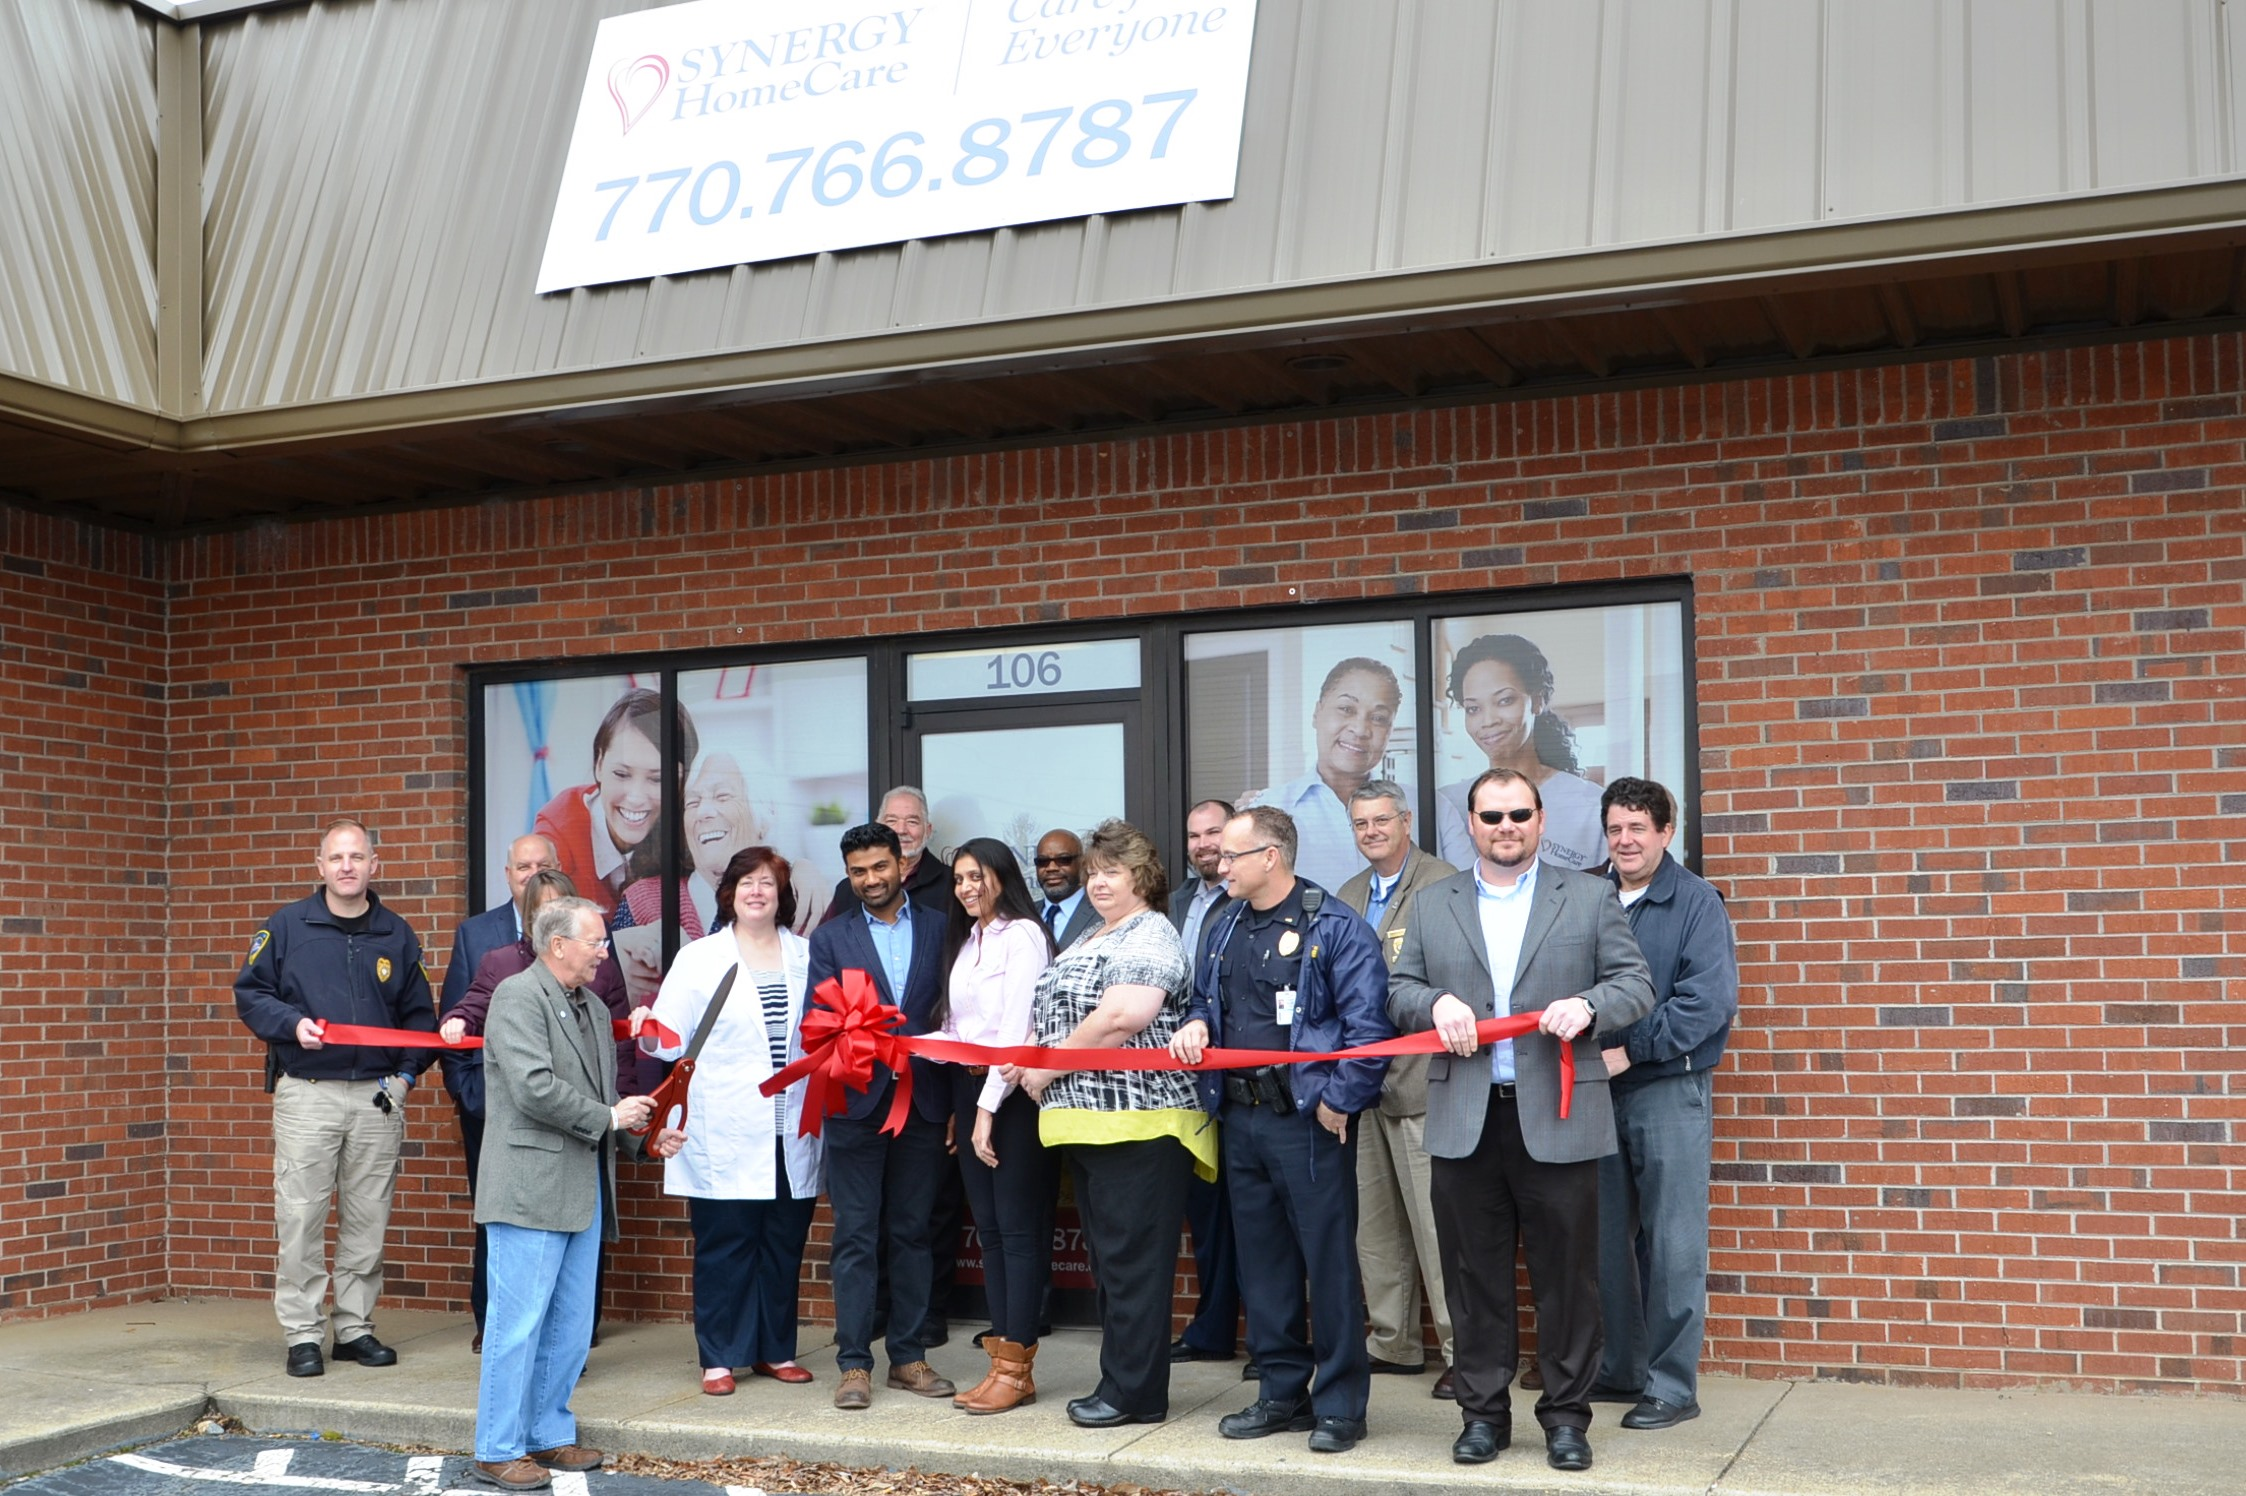 Image of Ribbon Cutting for Synergy Home Care